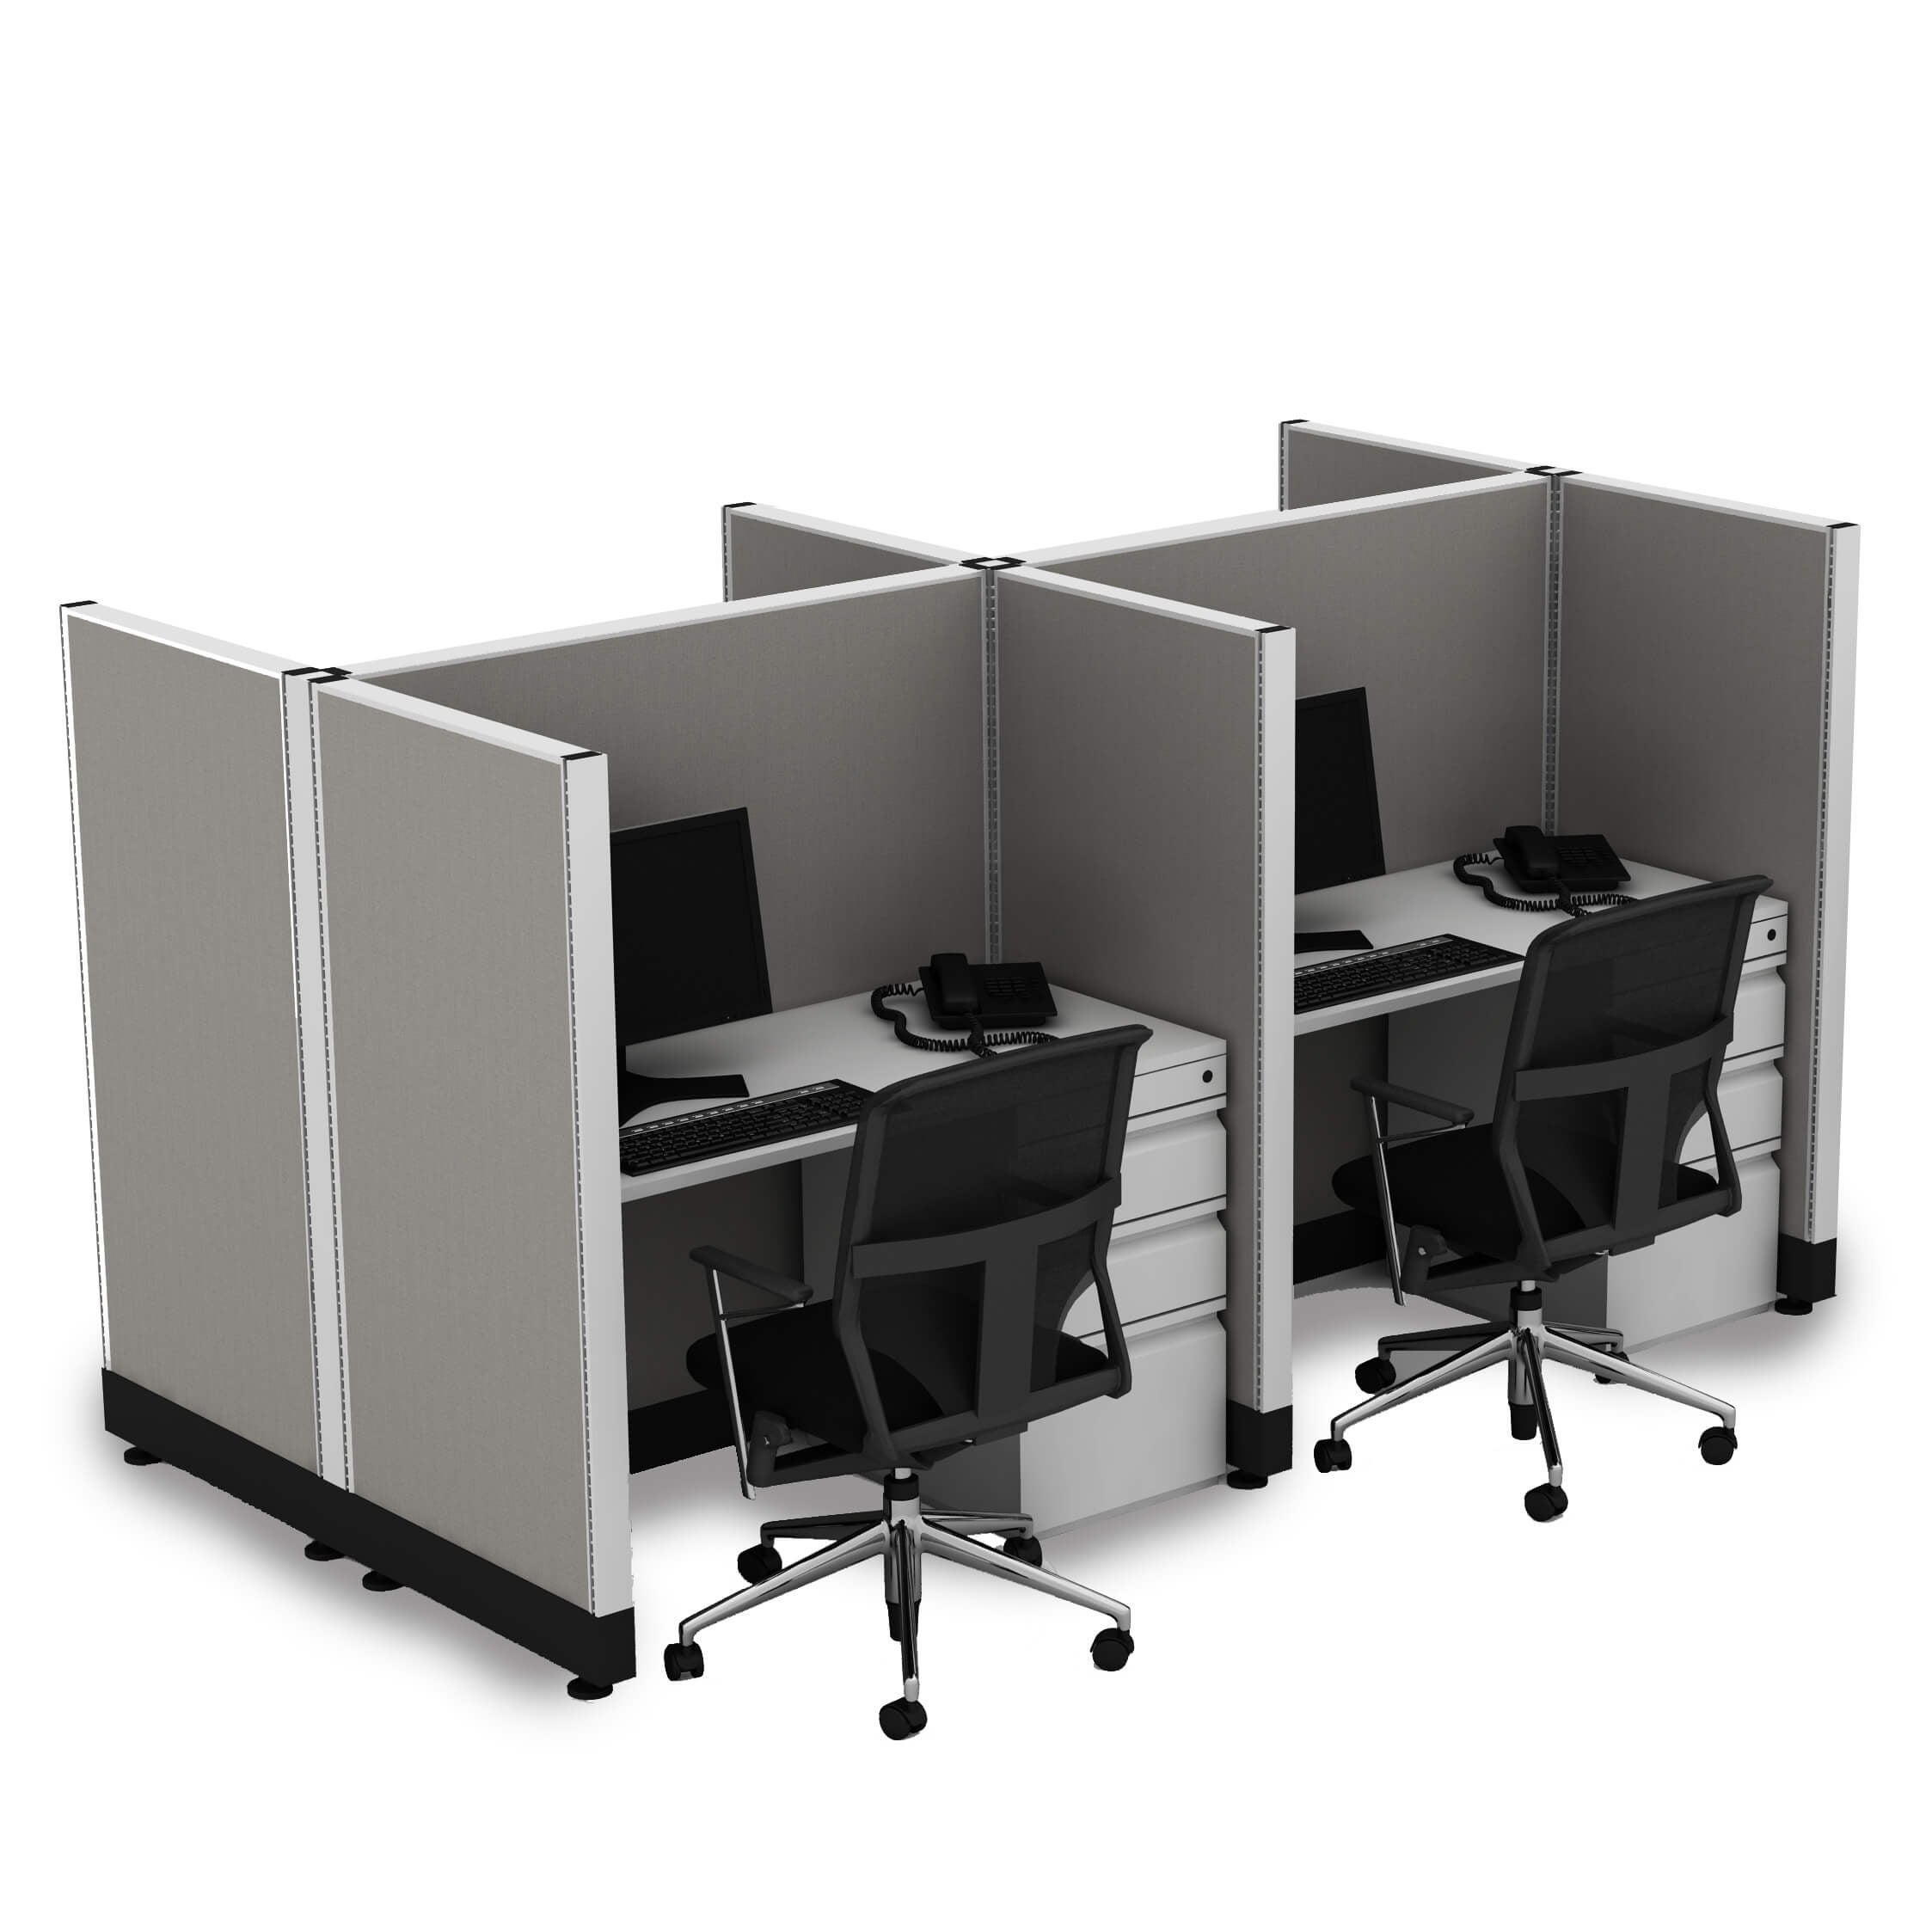 Office Cubicle Desk 53H 4pack Cluster Unpowered (4x4 - Espresso Desk Silver Paint - Assembled)